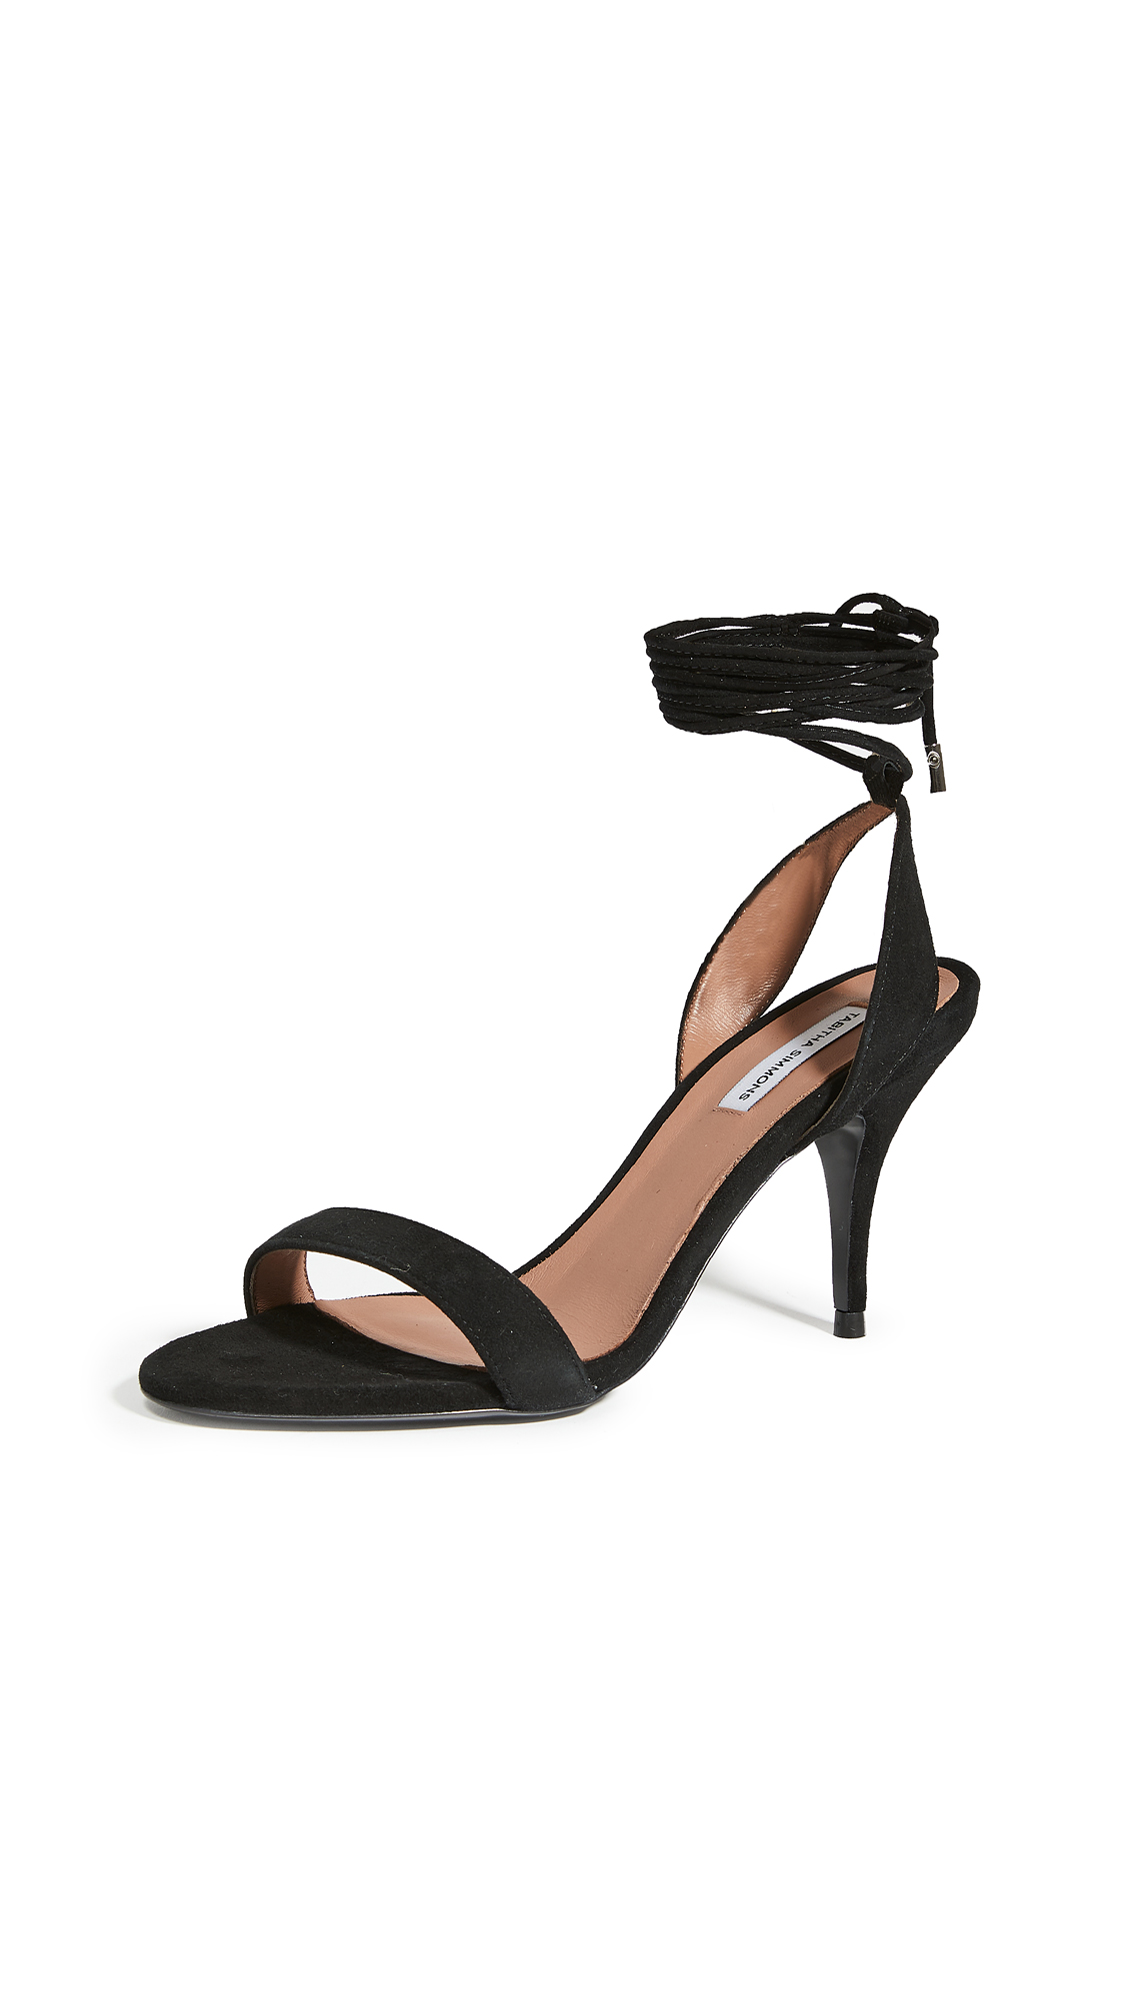 Buy Tabitha Simmons Ace Sandals online, shop Tabitha Simmons